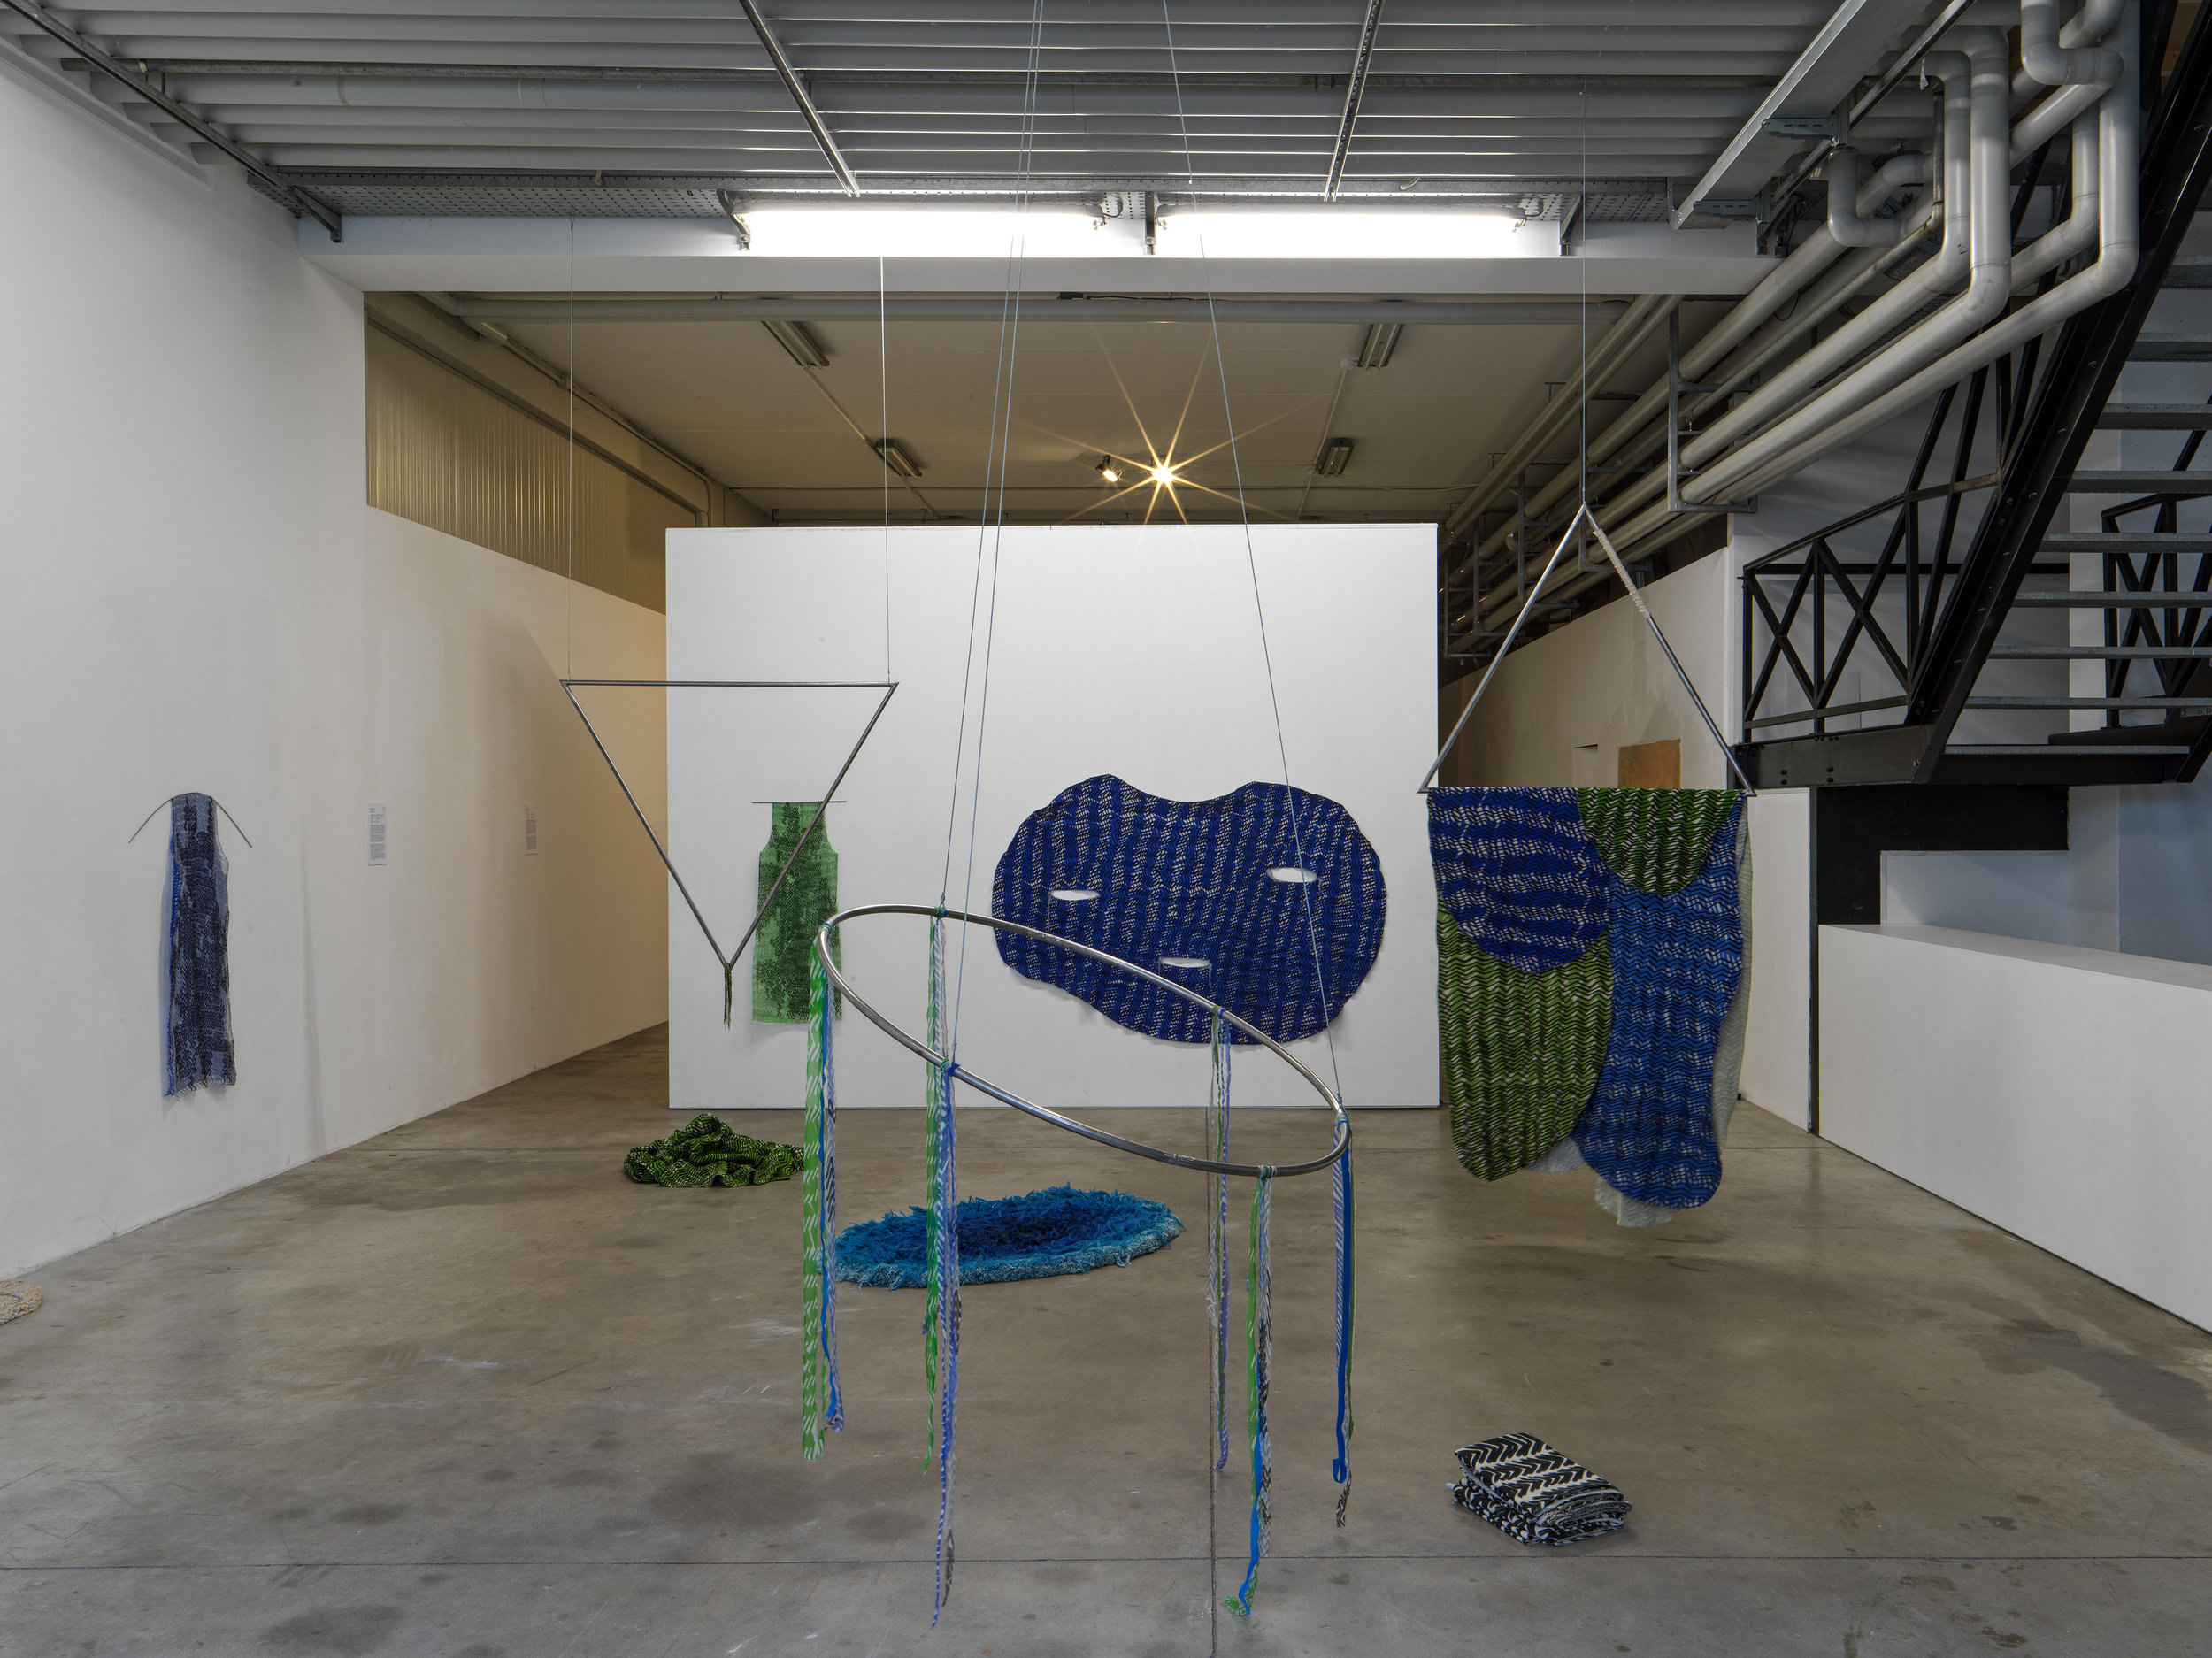 installation_view_Barbara_Gamper_photo_G.R.Wett.jpg